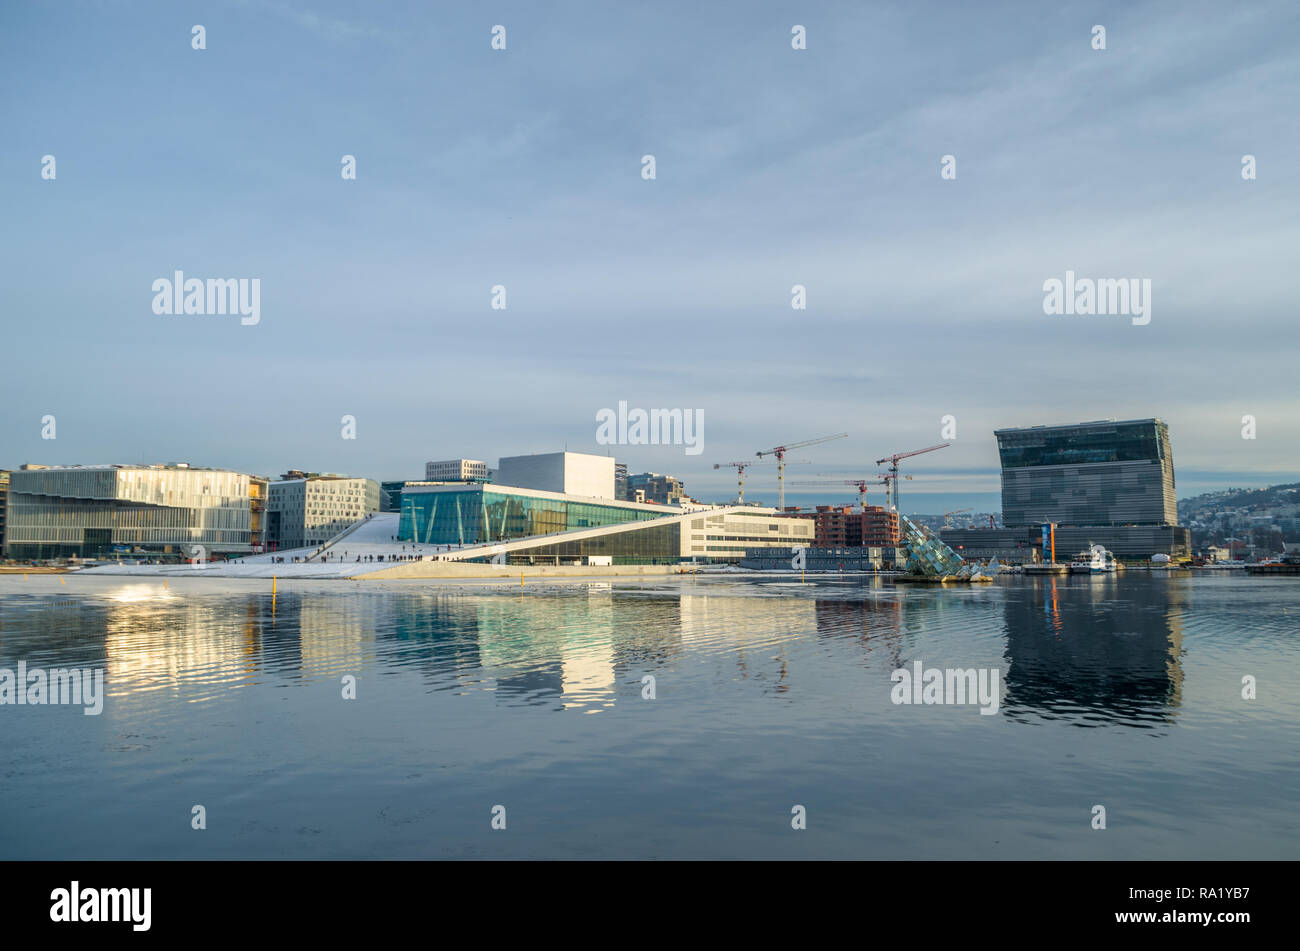 General view of Oslo Opera house in winter sunny afternoon. - Stock Image